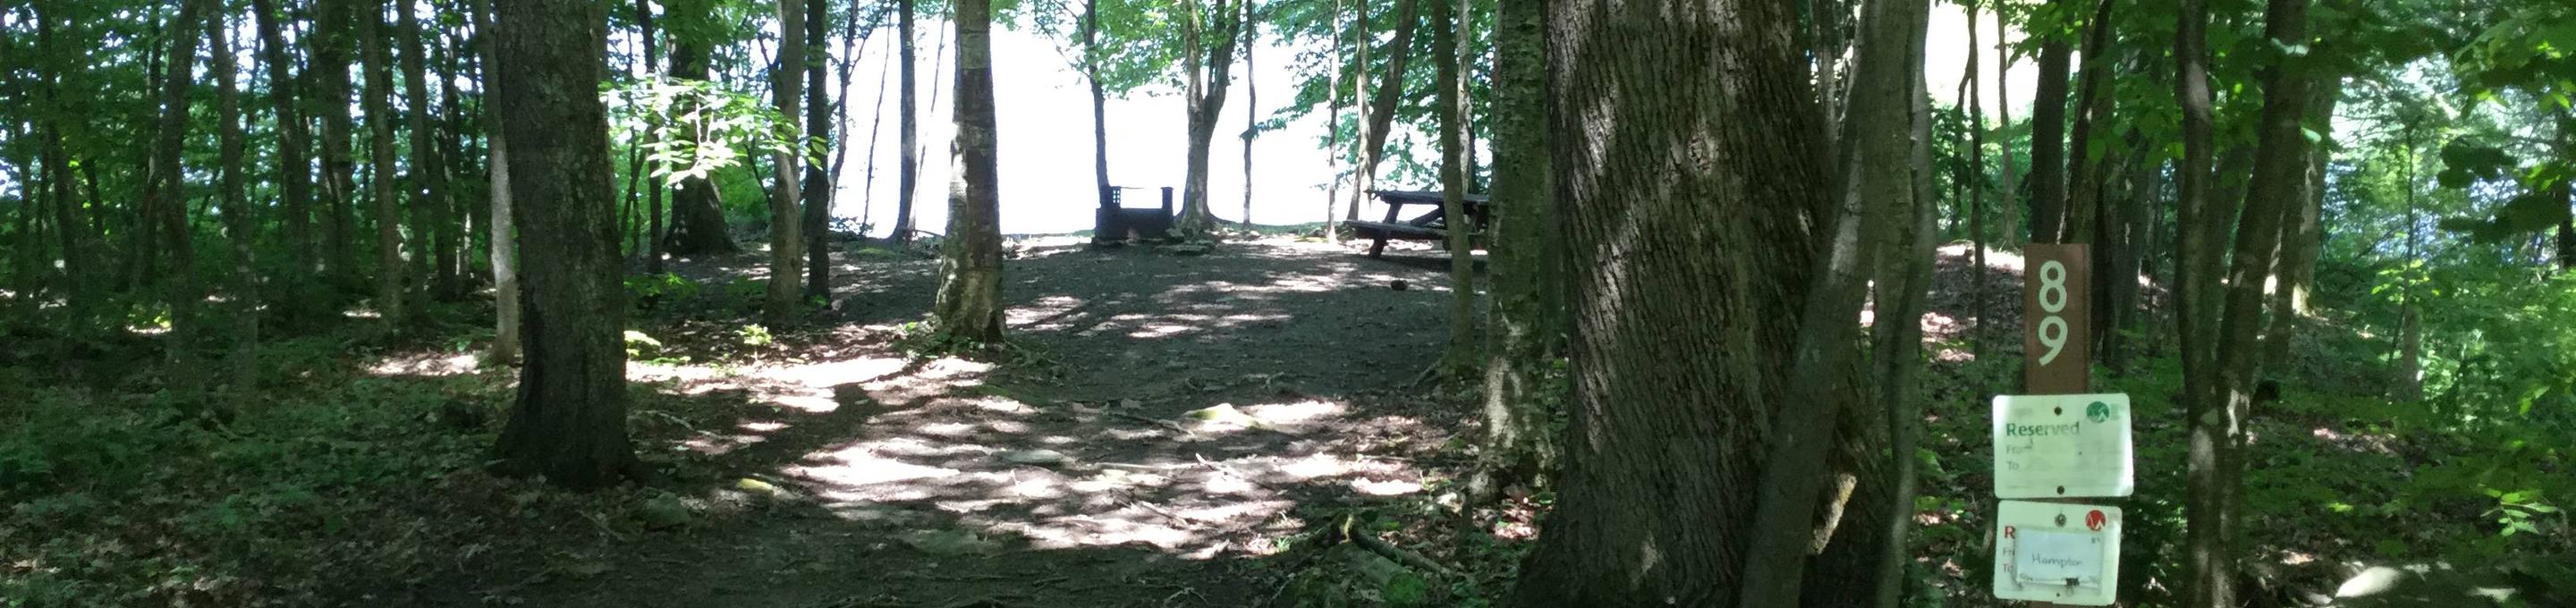 Willow Bay Recreation Area: Site 89